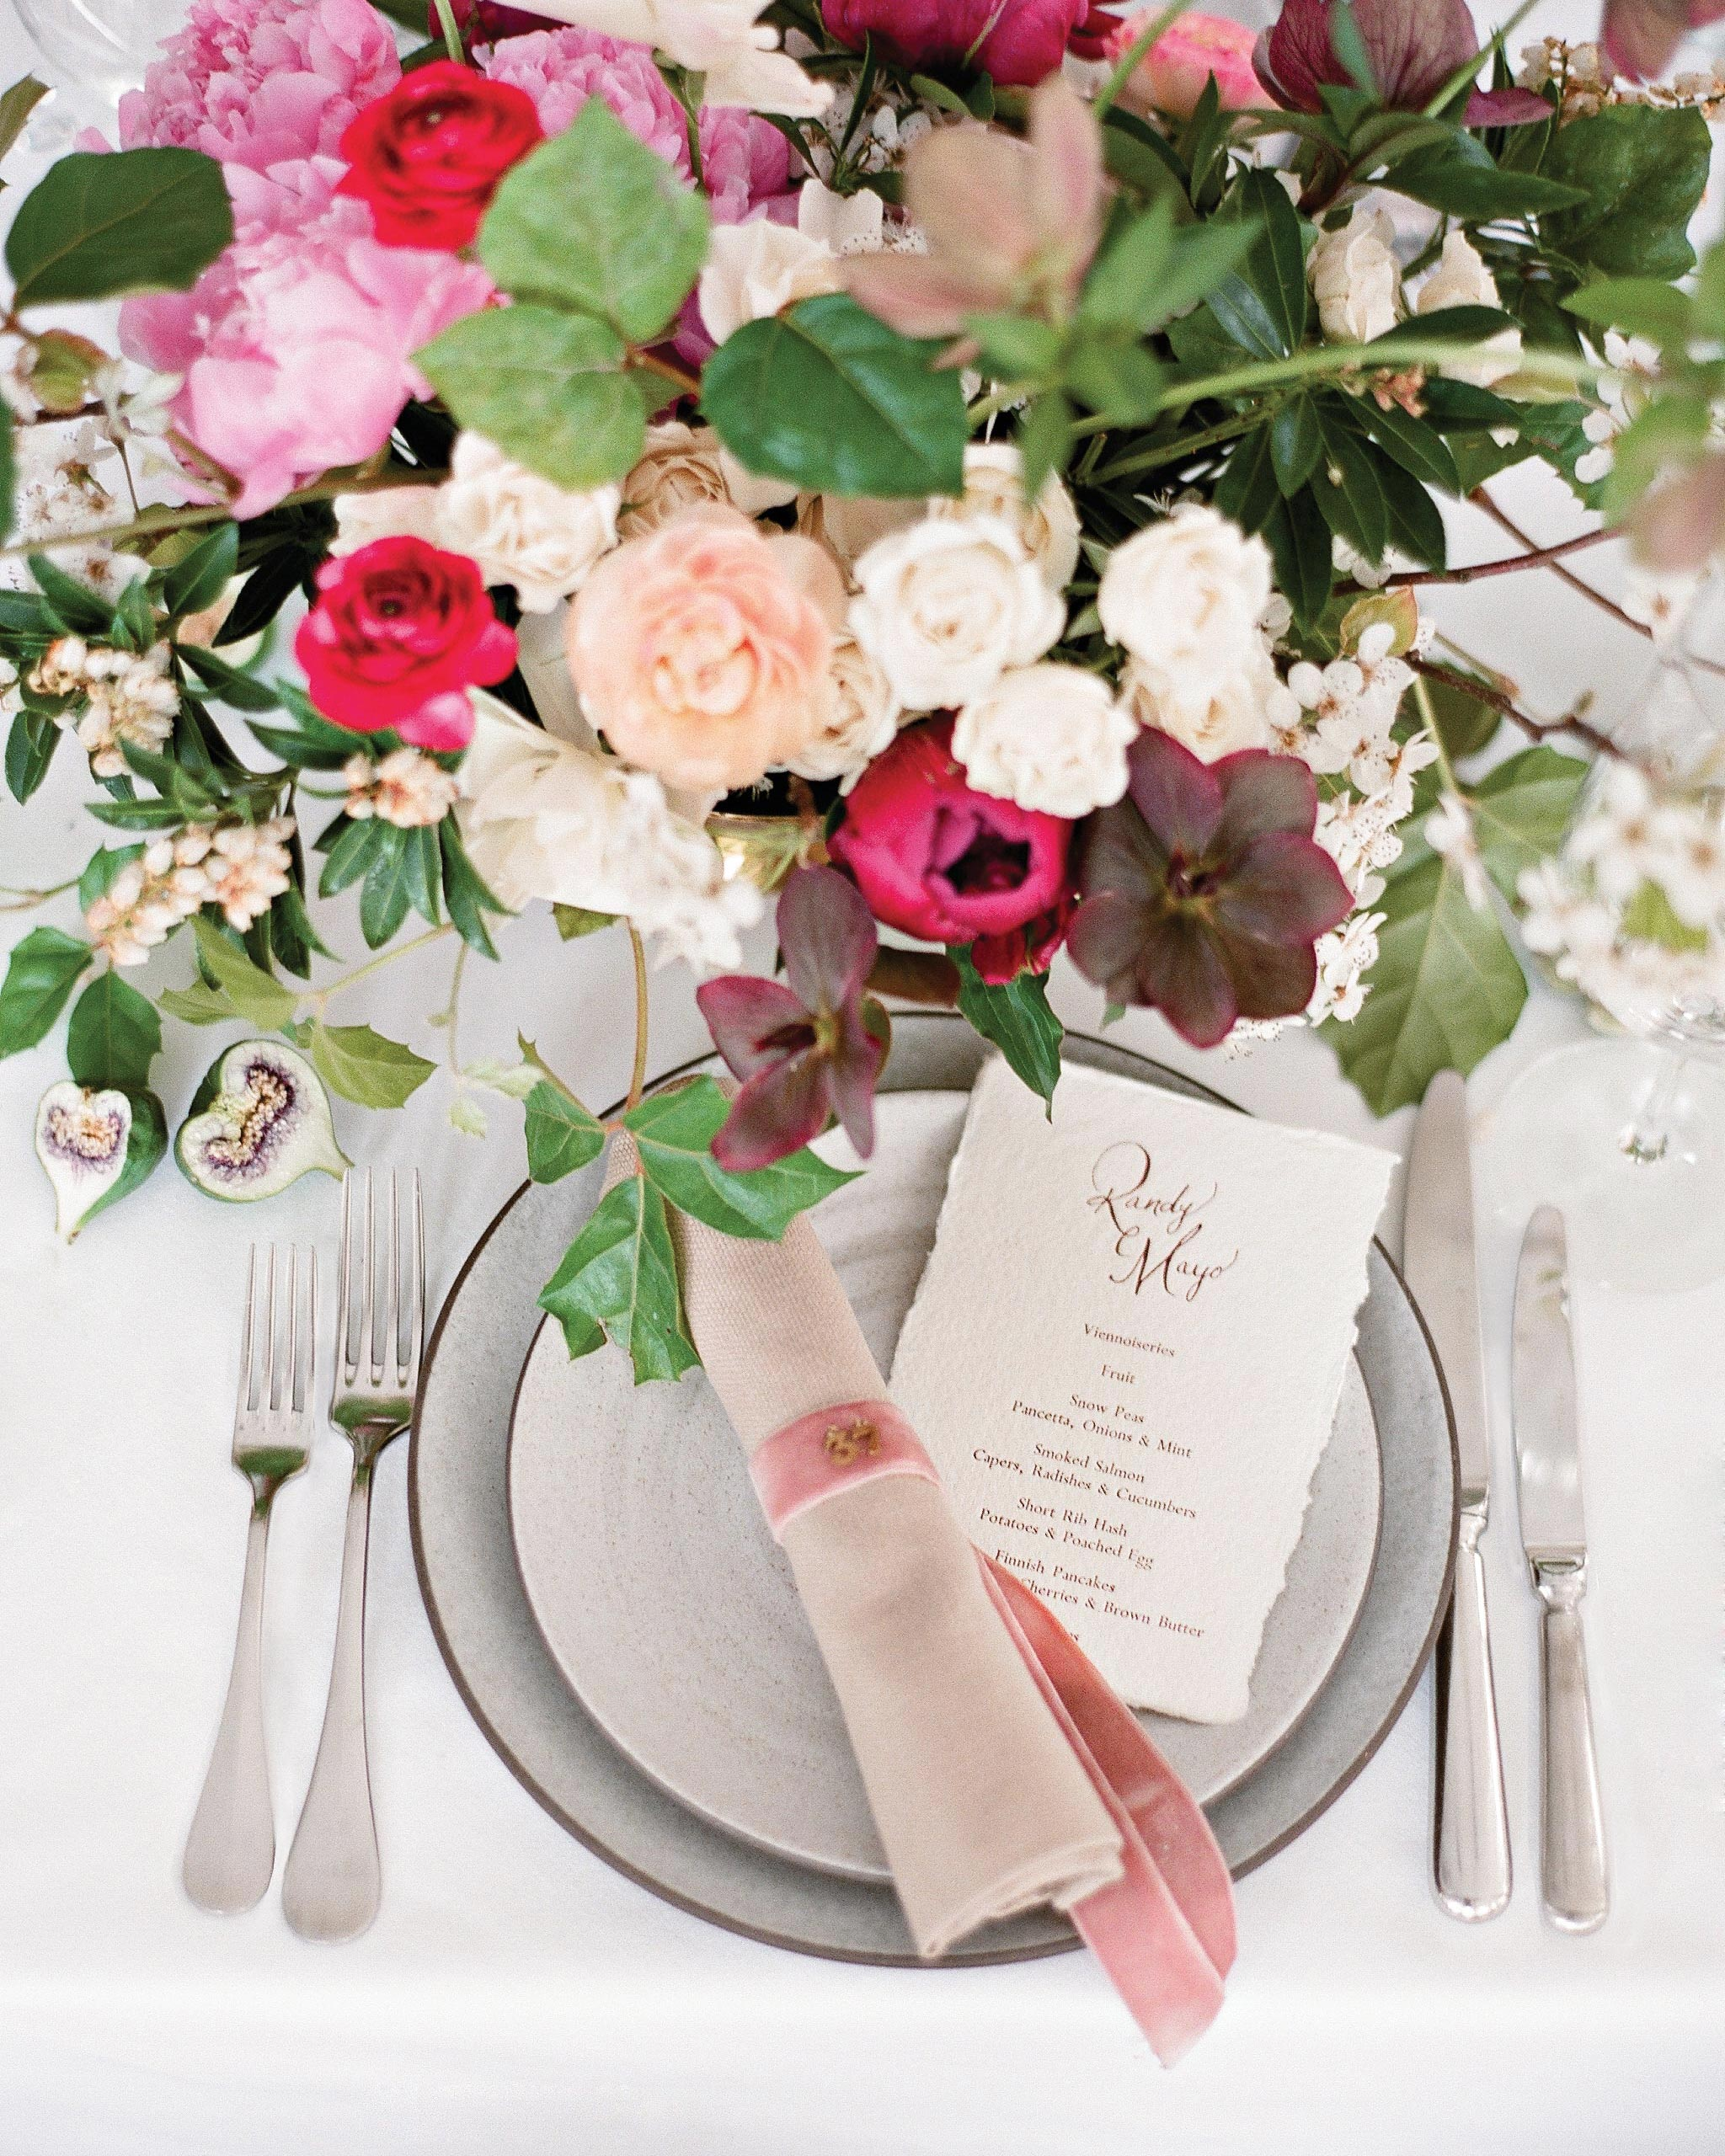 randy-mayo-real-wedding-place-setting-and-centerpiece.jpg